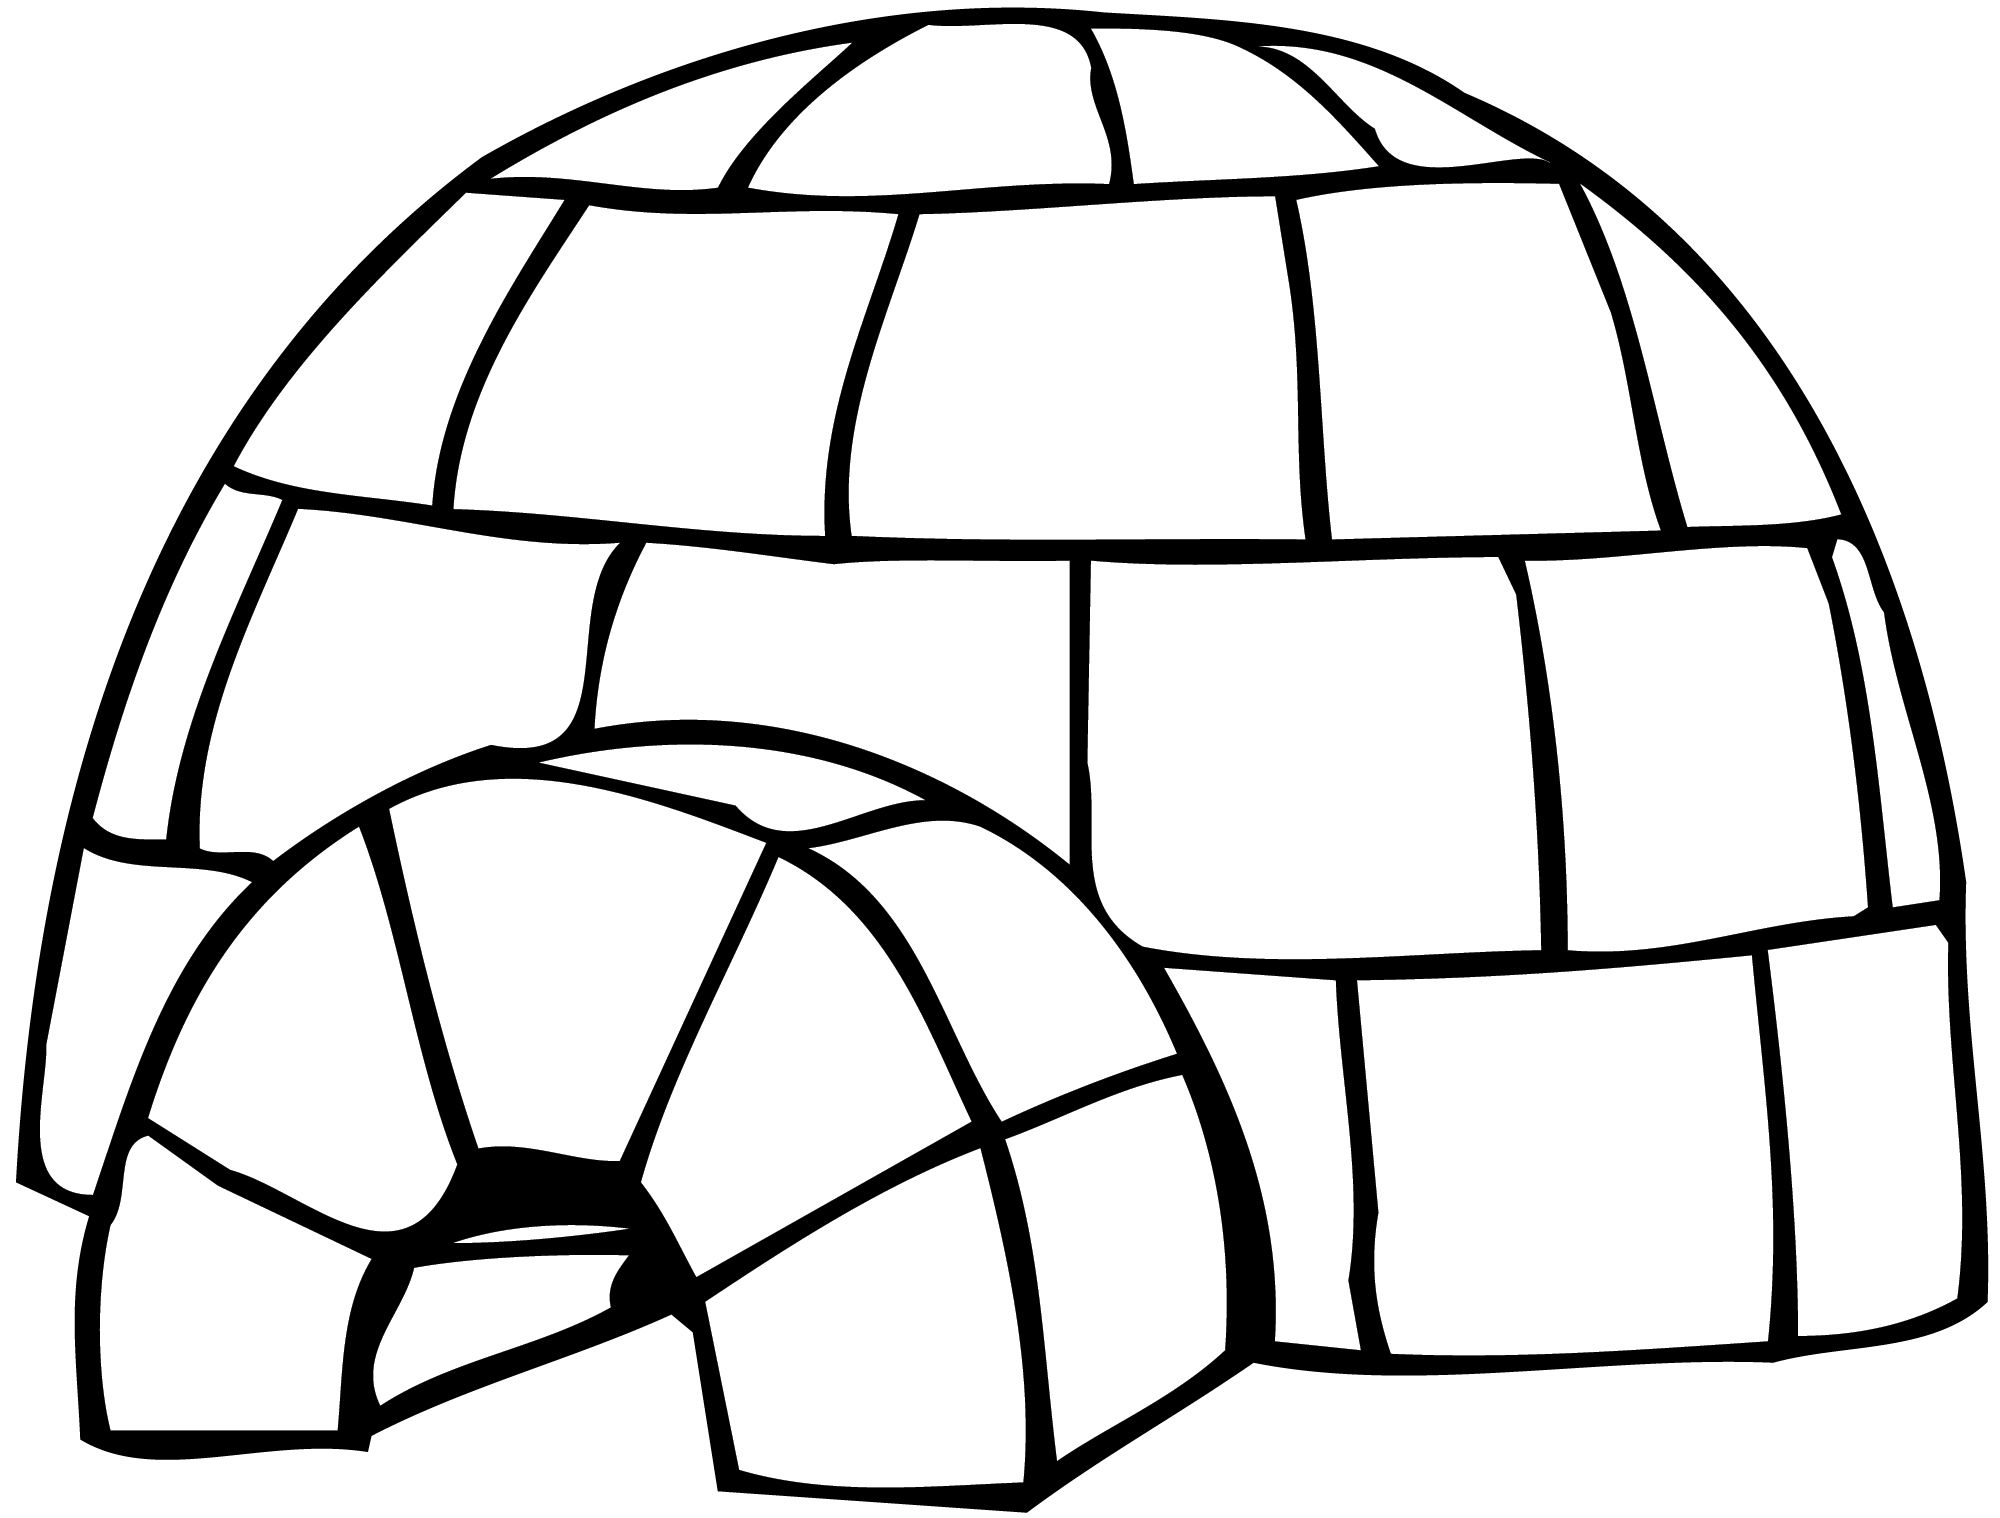 igloo coloring pages teachers - photo#23